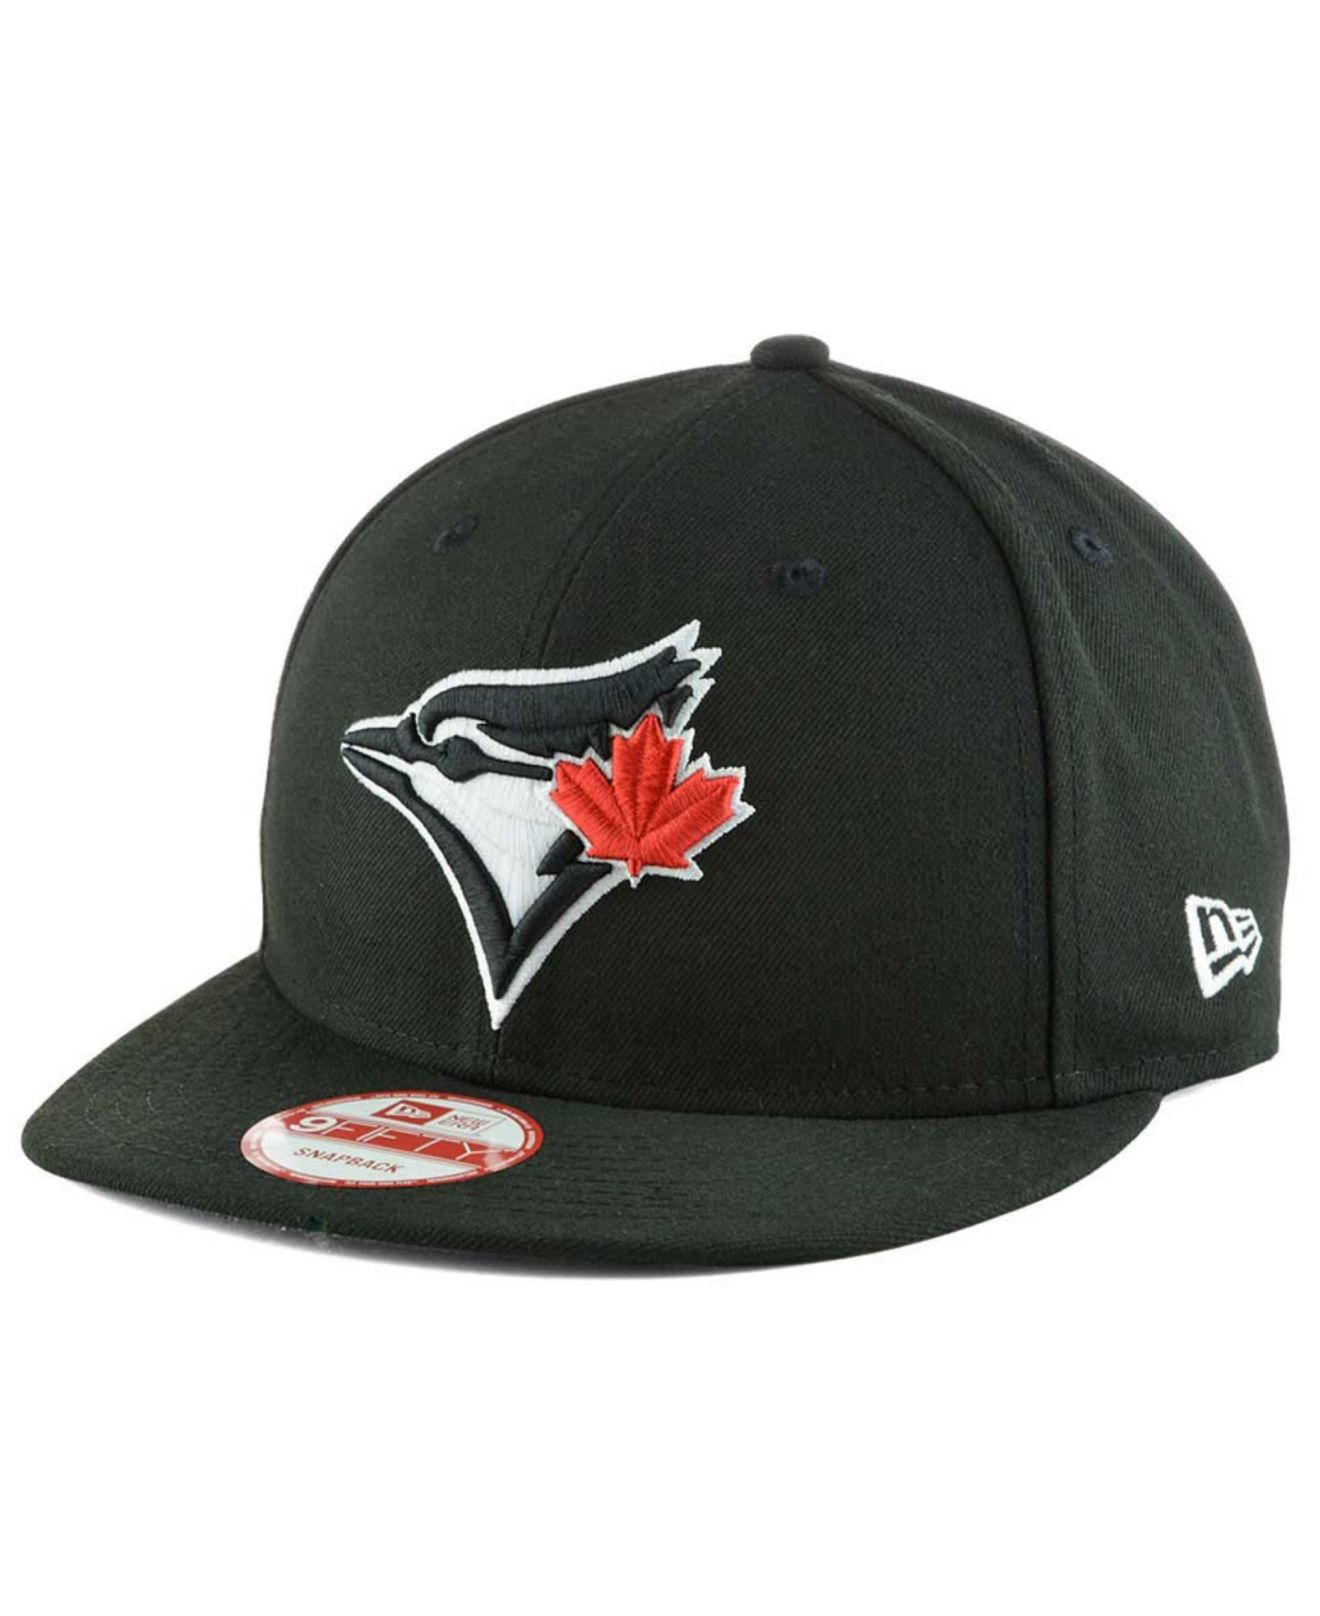 2e444b77af0533 ... discount lyst ktz toronto blue jays black white 9fifty snapback cap in  f84a9 ebcd7 ...